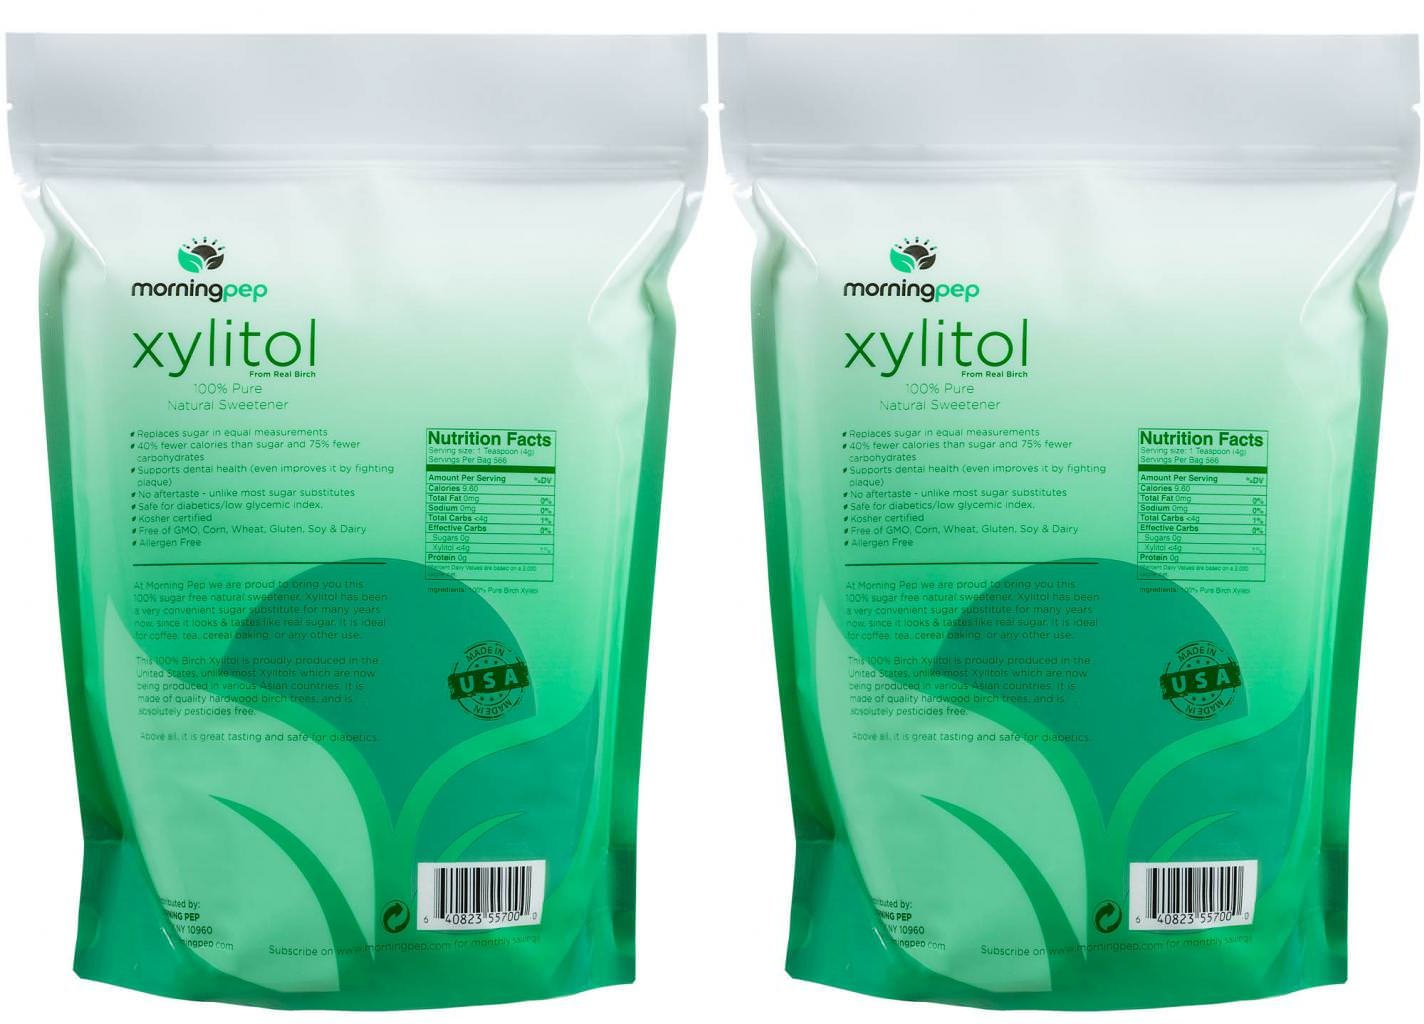 Pack of 2 Morning Pep Pure Birch Xylitol (Keto Diet Friendly) Sweetener Bulk Size 10 LB by (Not from Corn) Non GMO - Kosher - Gluten Free - Product of USA. Total 20 Lbs (320 OZ) by Morning Pep (Image #2)